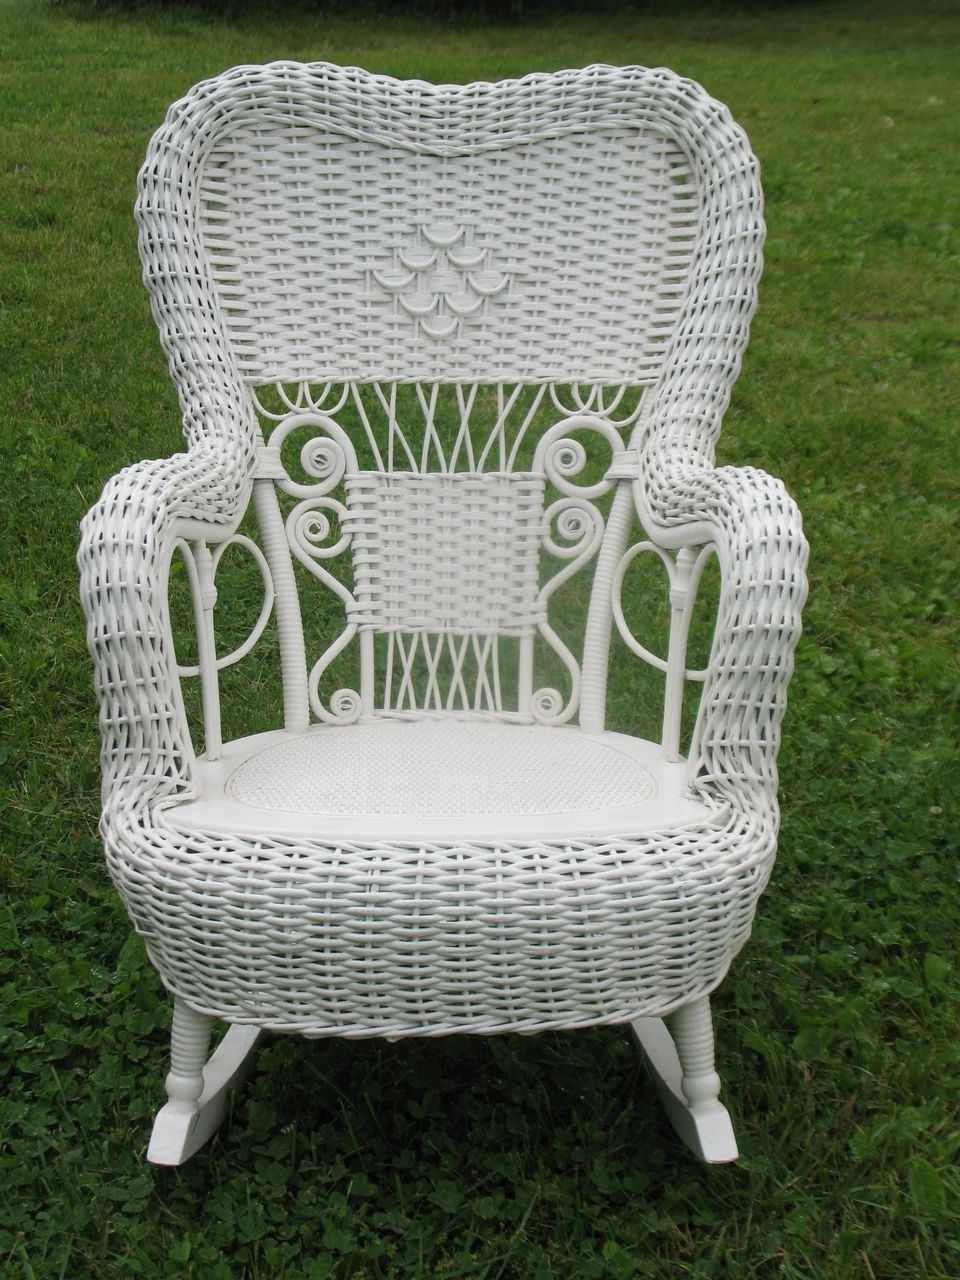 Current Outdoor Vintage Wicker Rocking Chair With Green Color Chairs Rocker With Vintage Wicker Rocking Chairs (View 9 of 15)